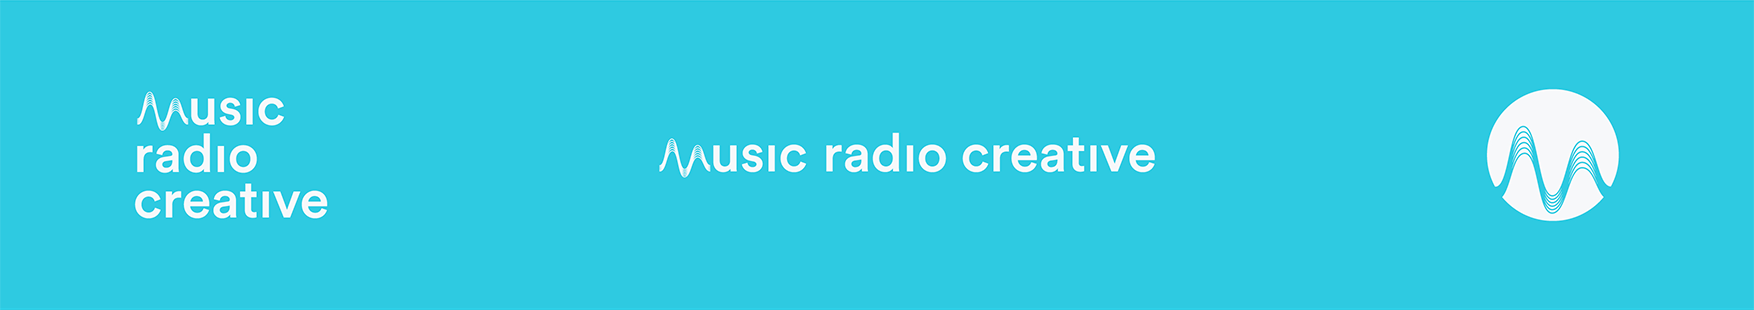 music-radio-creative-brand-04.png